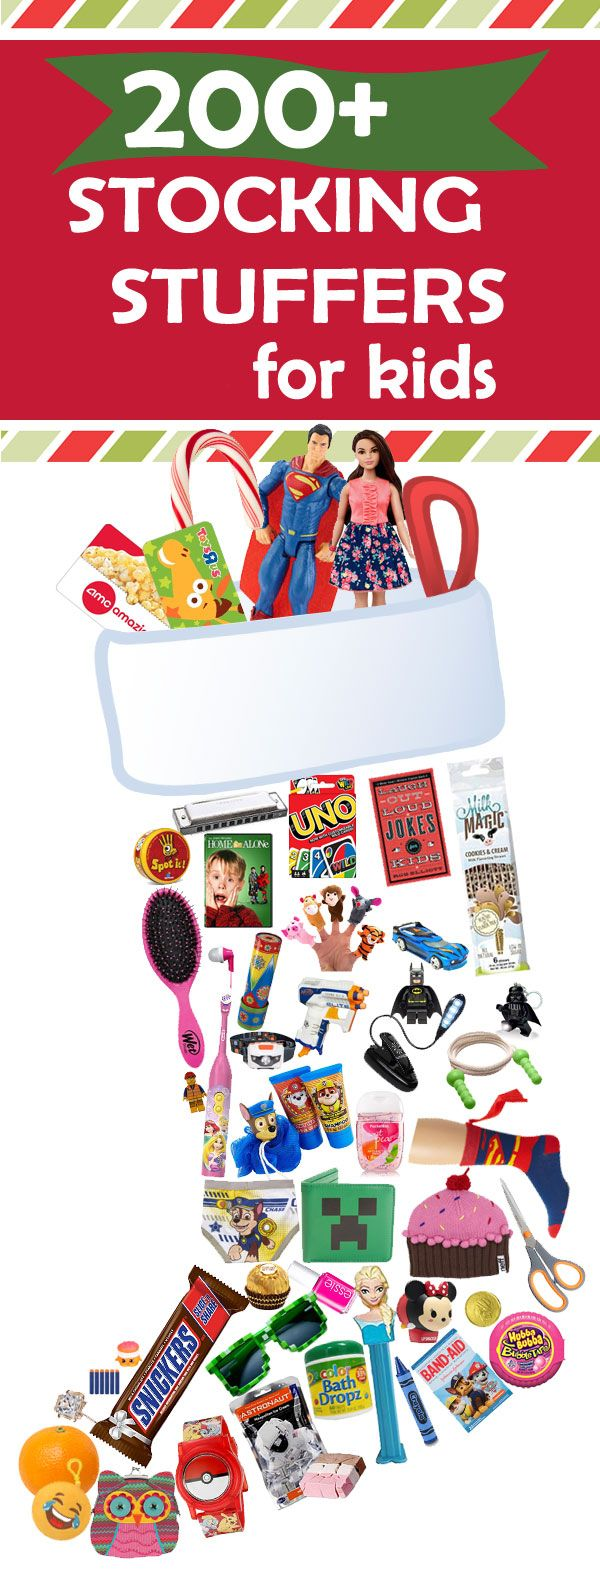 Parents, save this list! It contains all the coolest stocking stuffers for kids. See over 200 Christmas stocking ideas for kids.